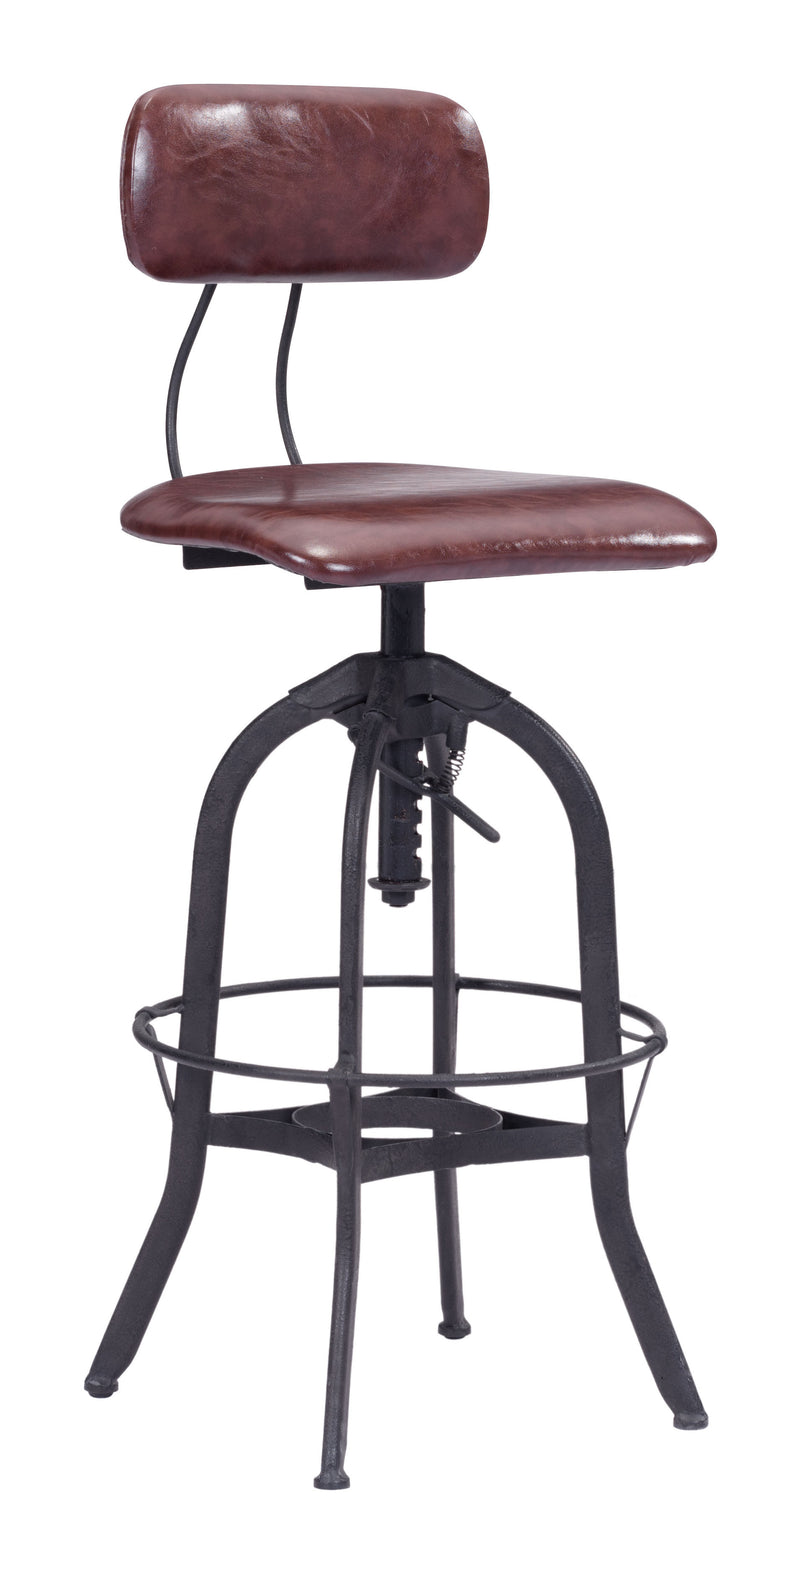 Gering Bar Chair (Burgundy & Antique Black)